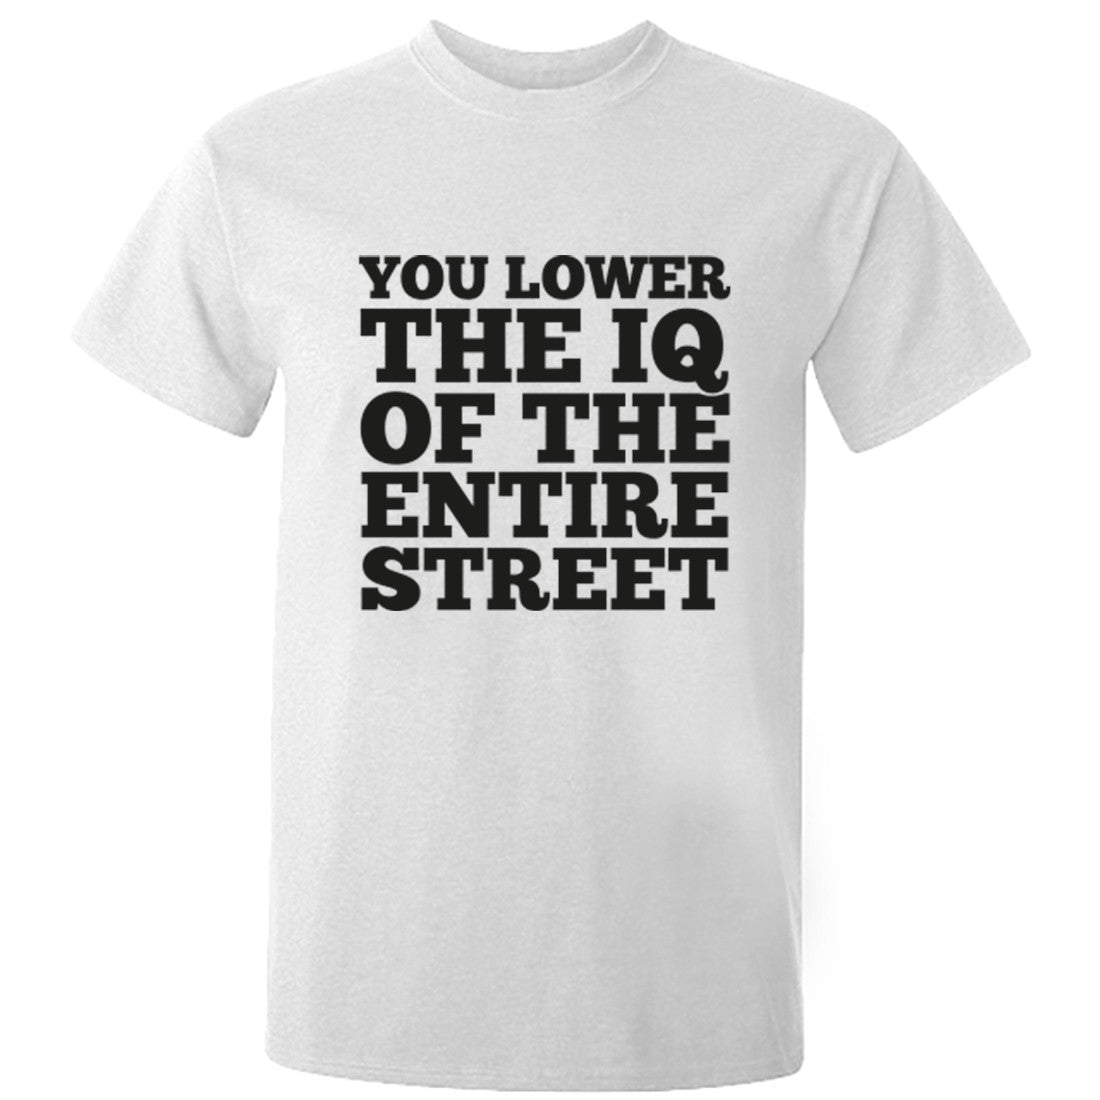 You Lower The IQ Of The Entire Street Unisex Fit T-Shirt K0566